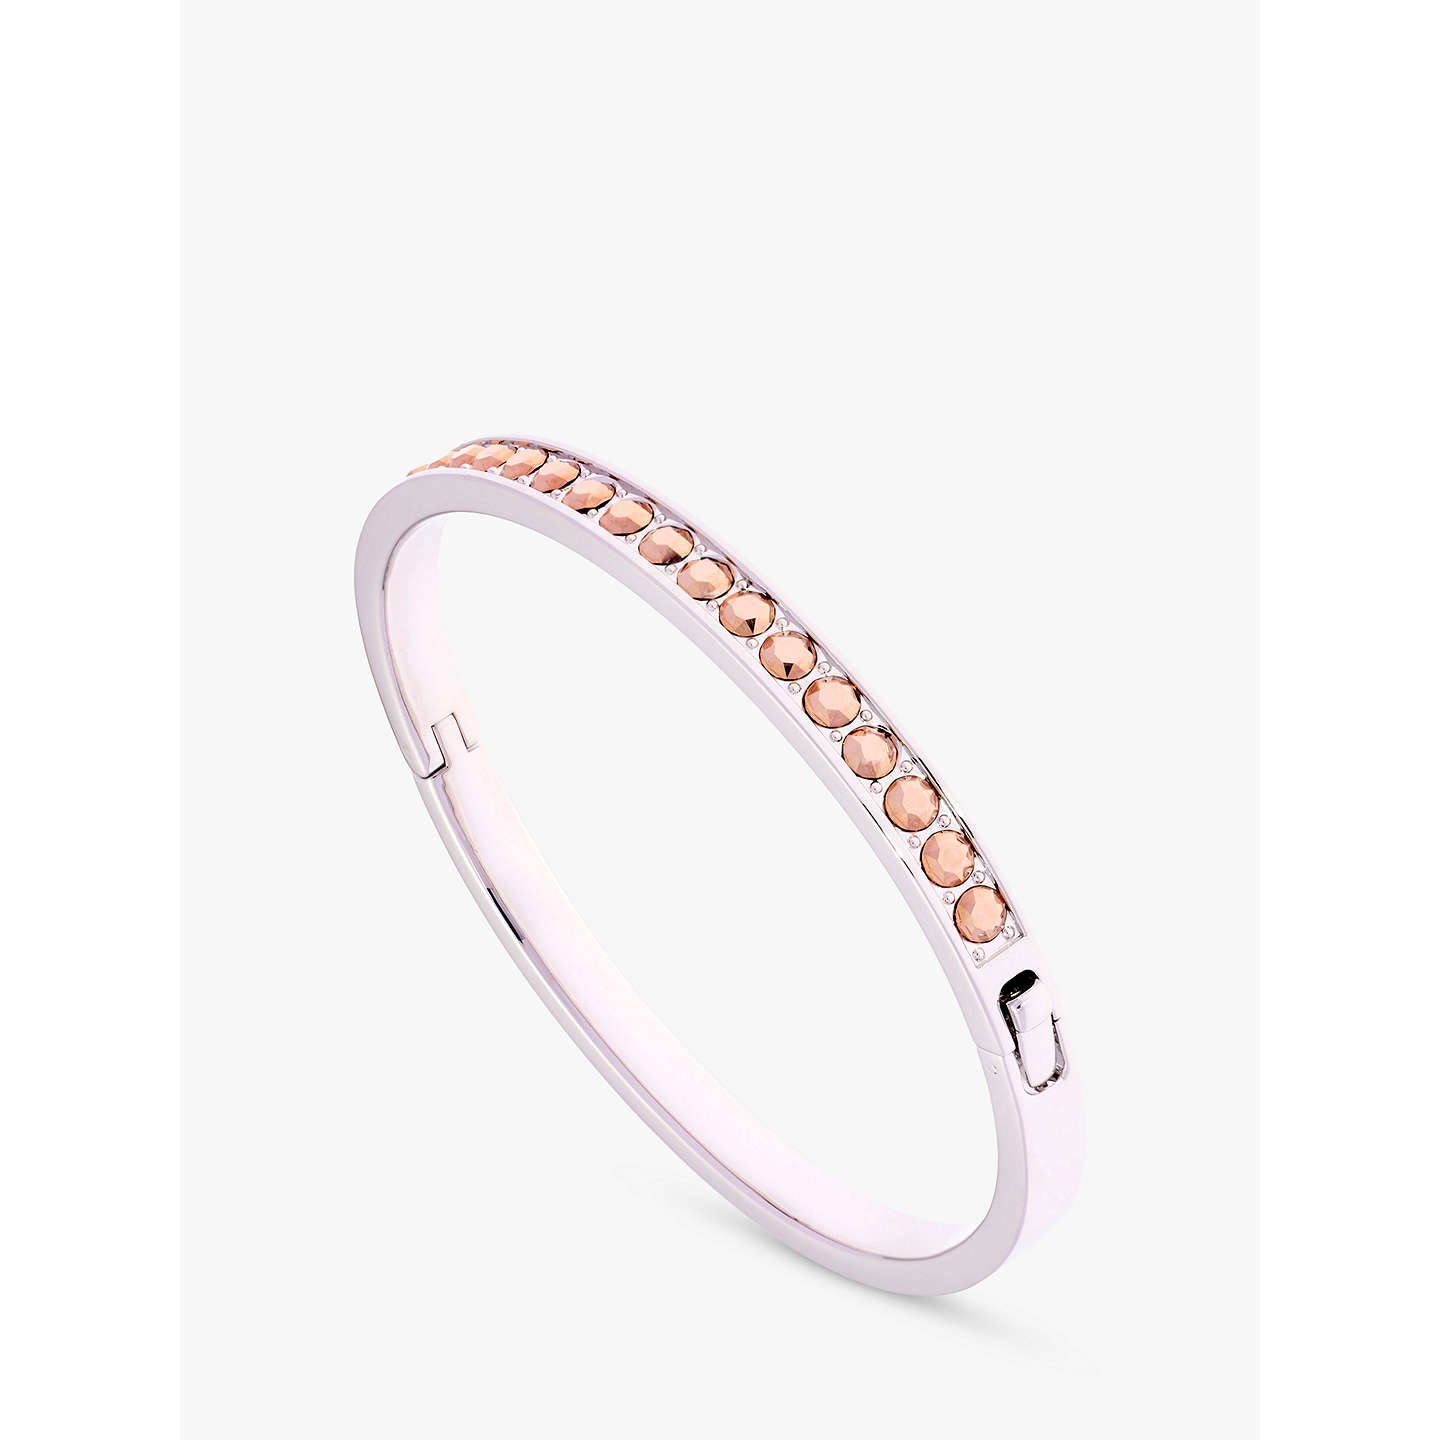 BuyTed Baker Clemara Swarovski Crystal Bangle, Silver/Rose Online at johnlewis.com